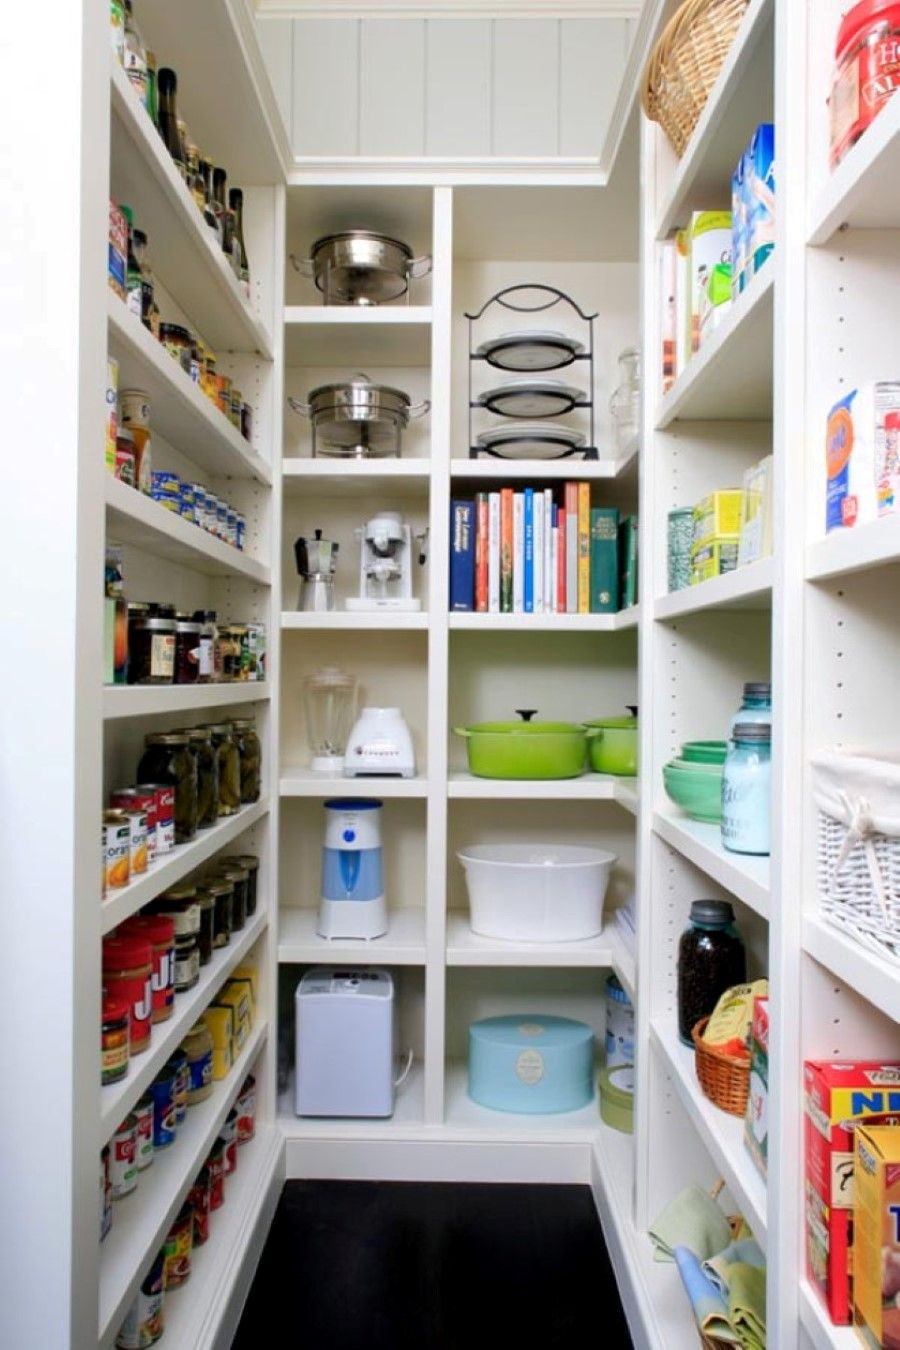 15 Kitchen Pantry Ideas With Form And Function Narrow shelves